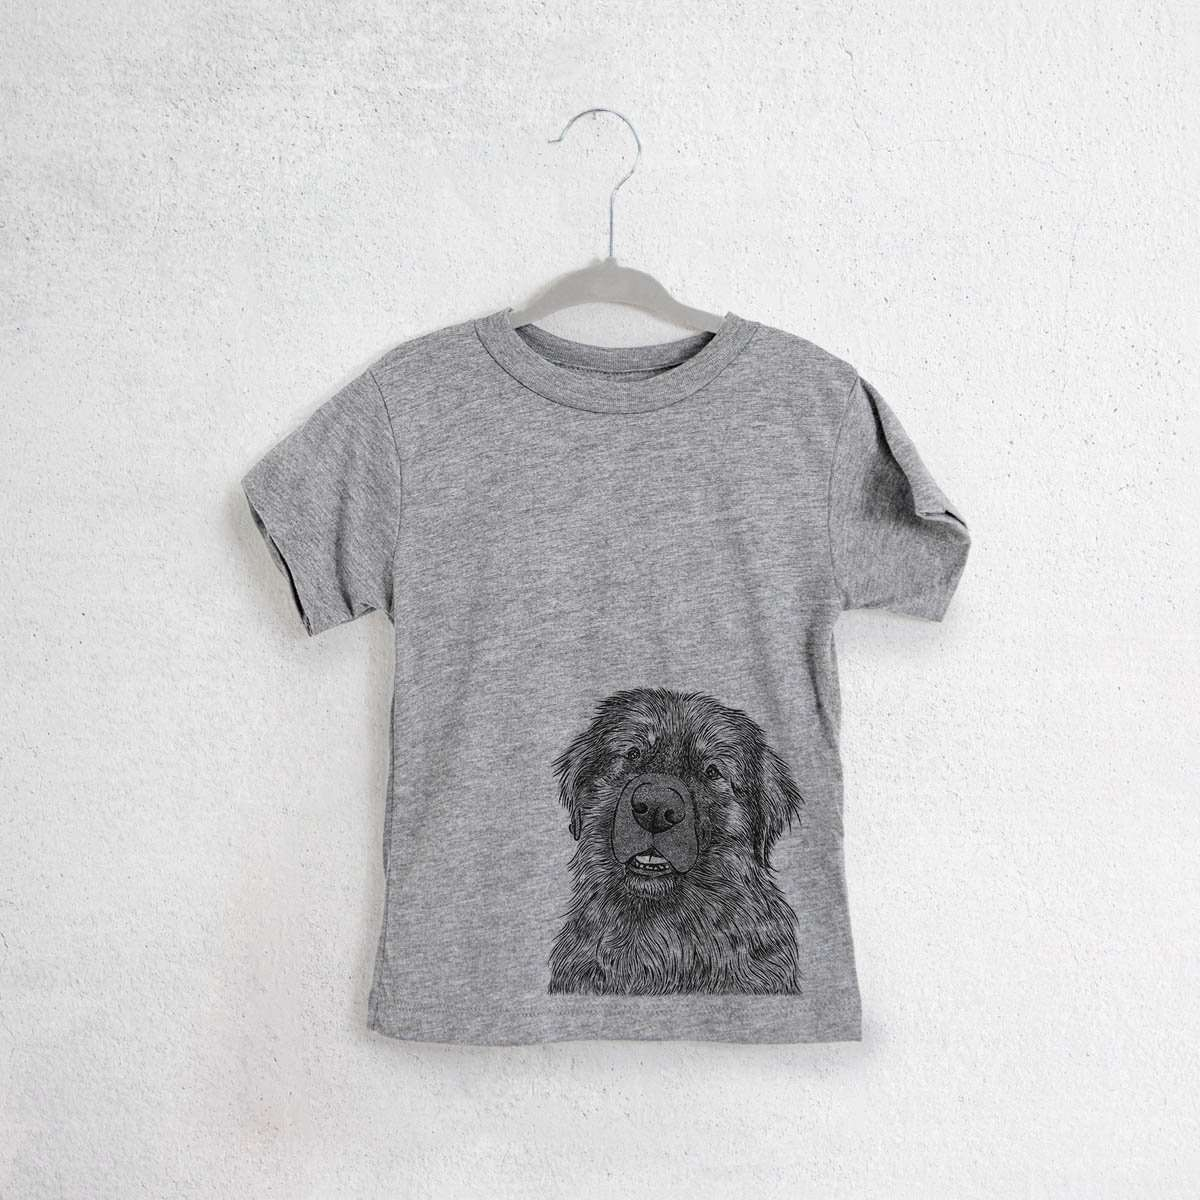 Ralph the Leonberger - Kids/Youth/Toddler Shirt